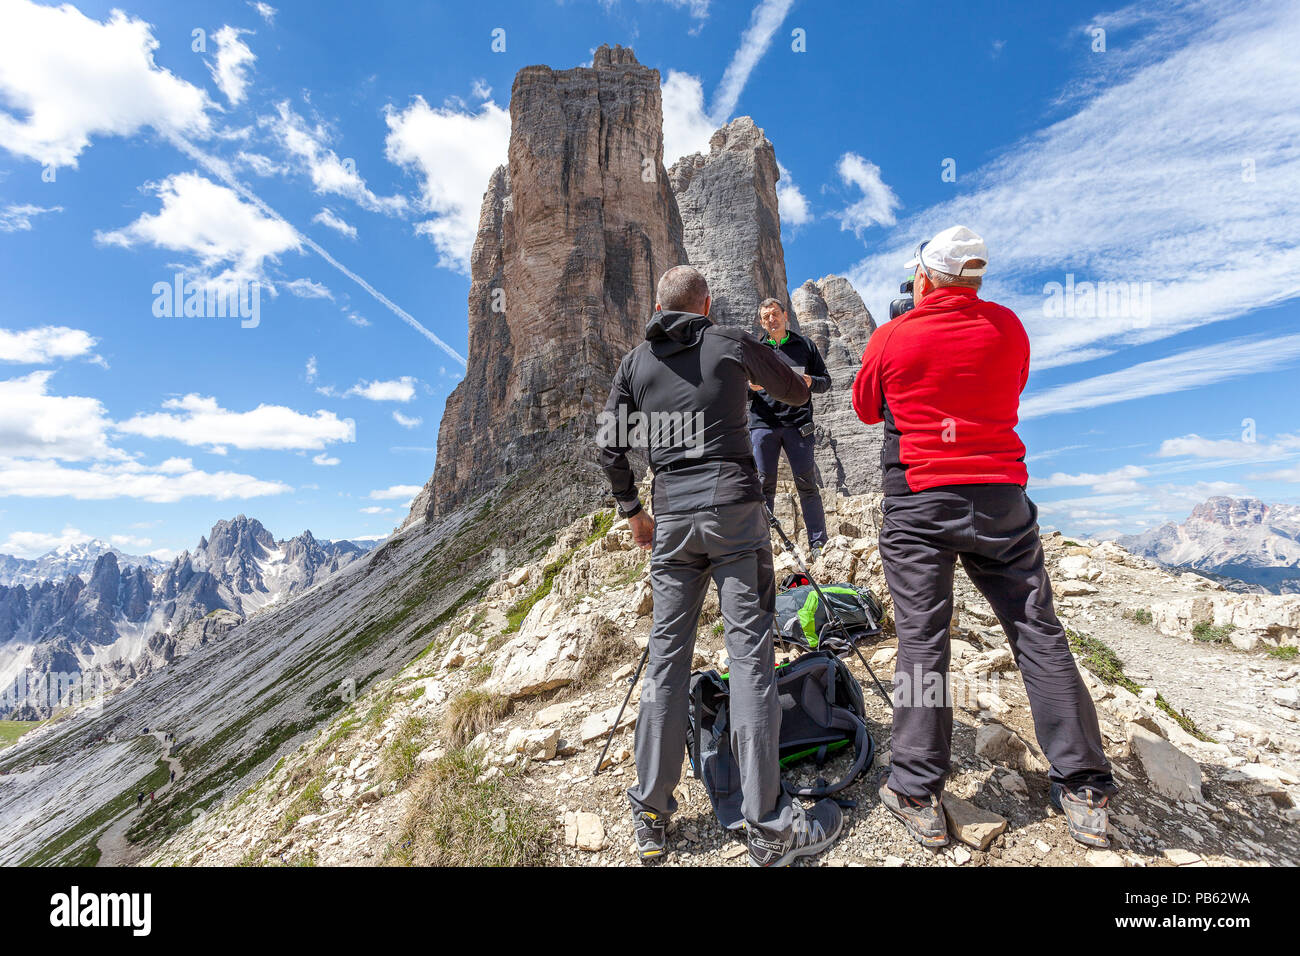 AURONZO DI CADORE, ITALY - JUNE 26, 2018: Cameramen and journalists filming a documentary about Tre Cime di Lavaredo, Dolomites - Stock Image